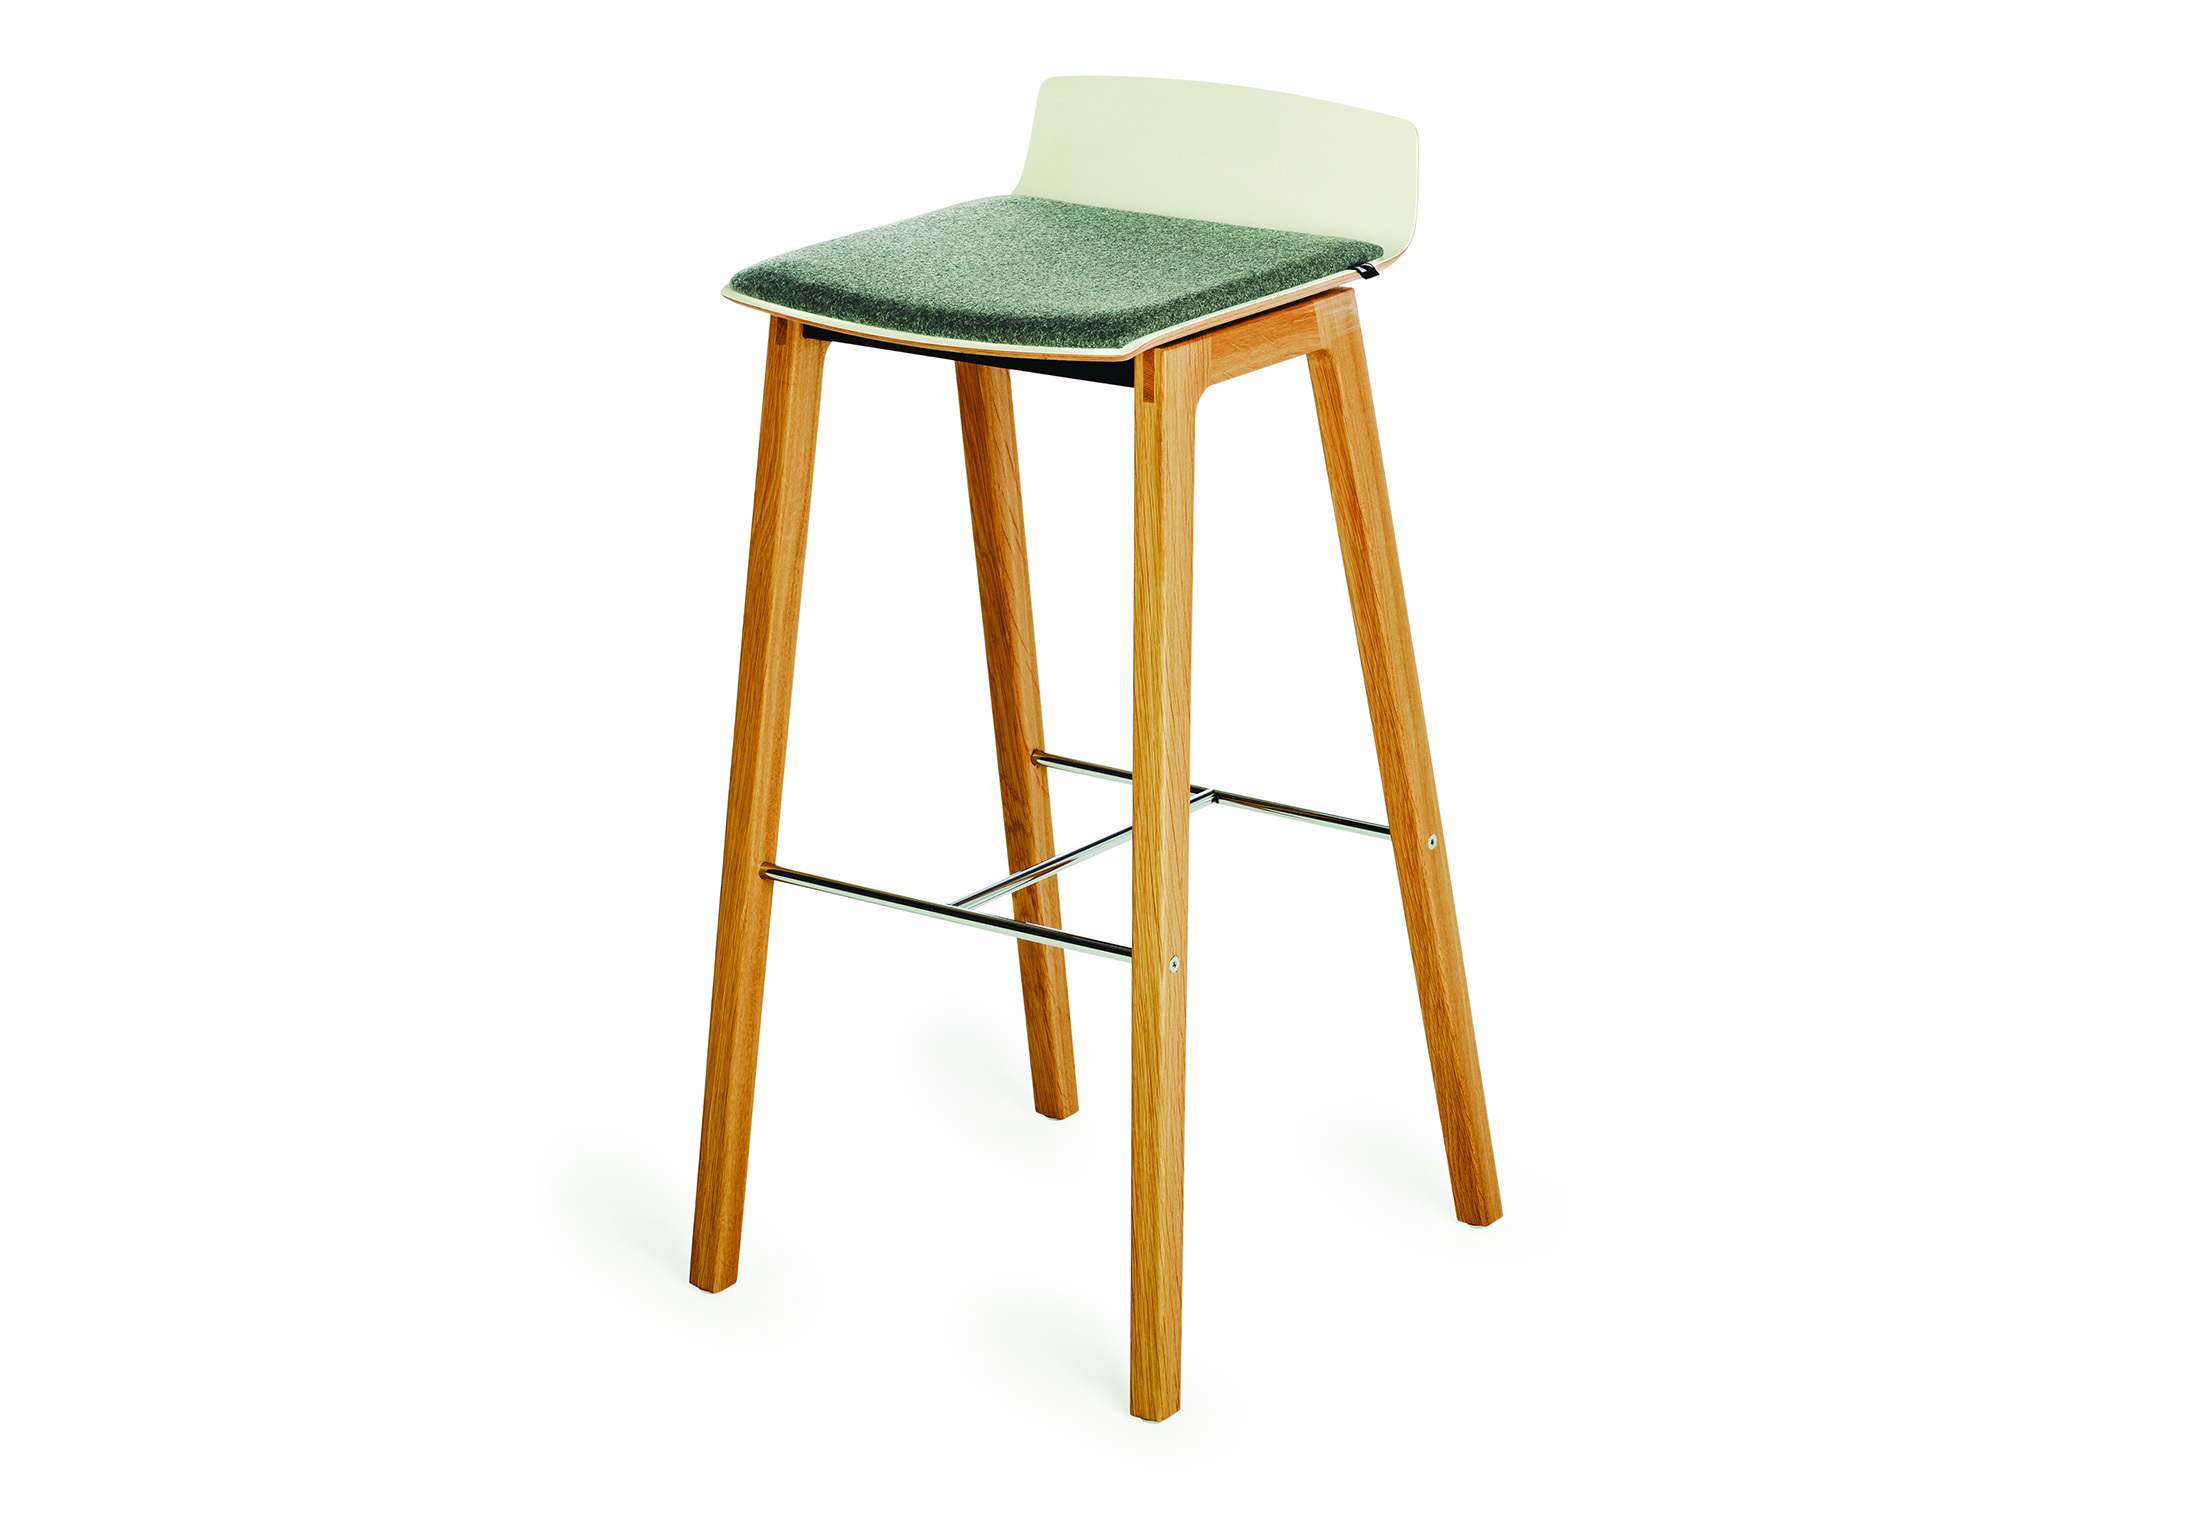 Incredible Move Mix Bar Stool By Konig Neurath Stylepark Ibusinesslaw Wood Chair Design Ideas Ibusinesslaworg